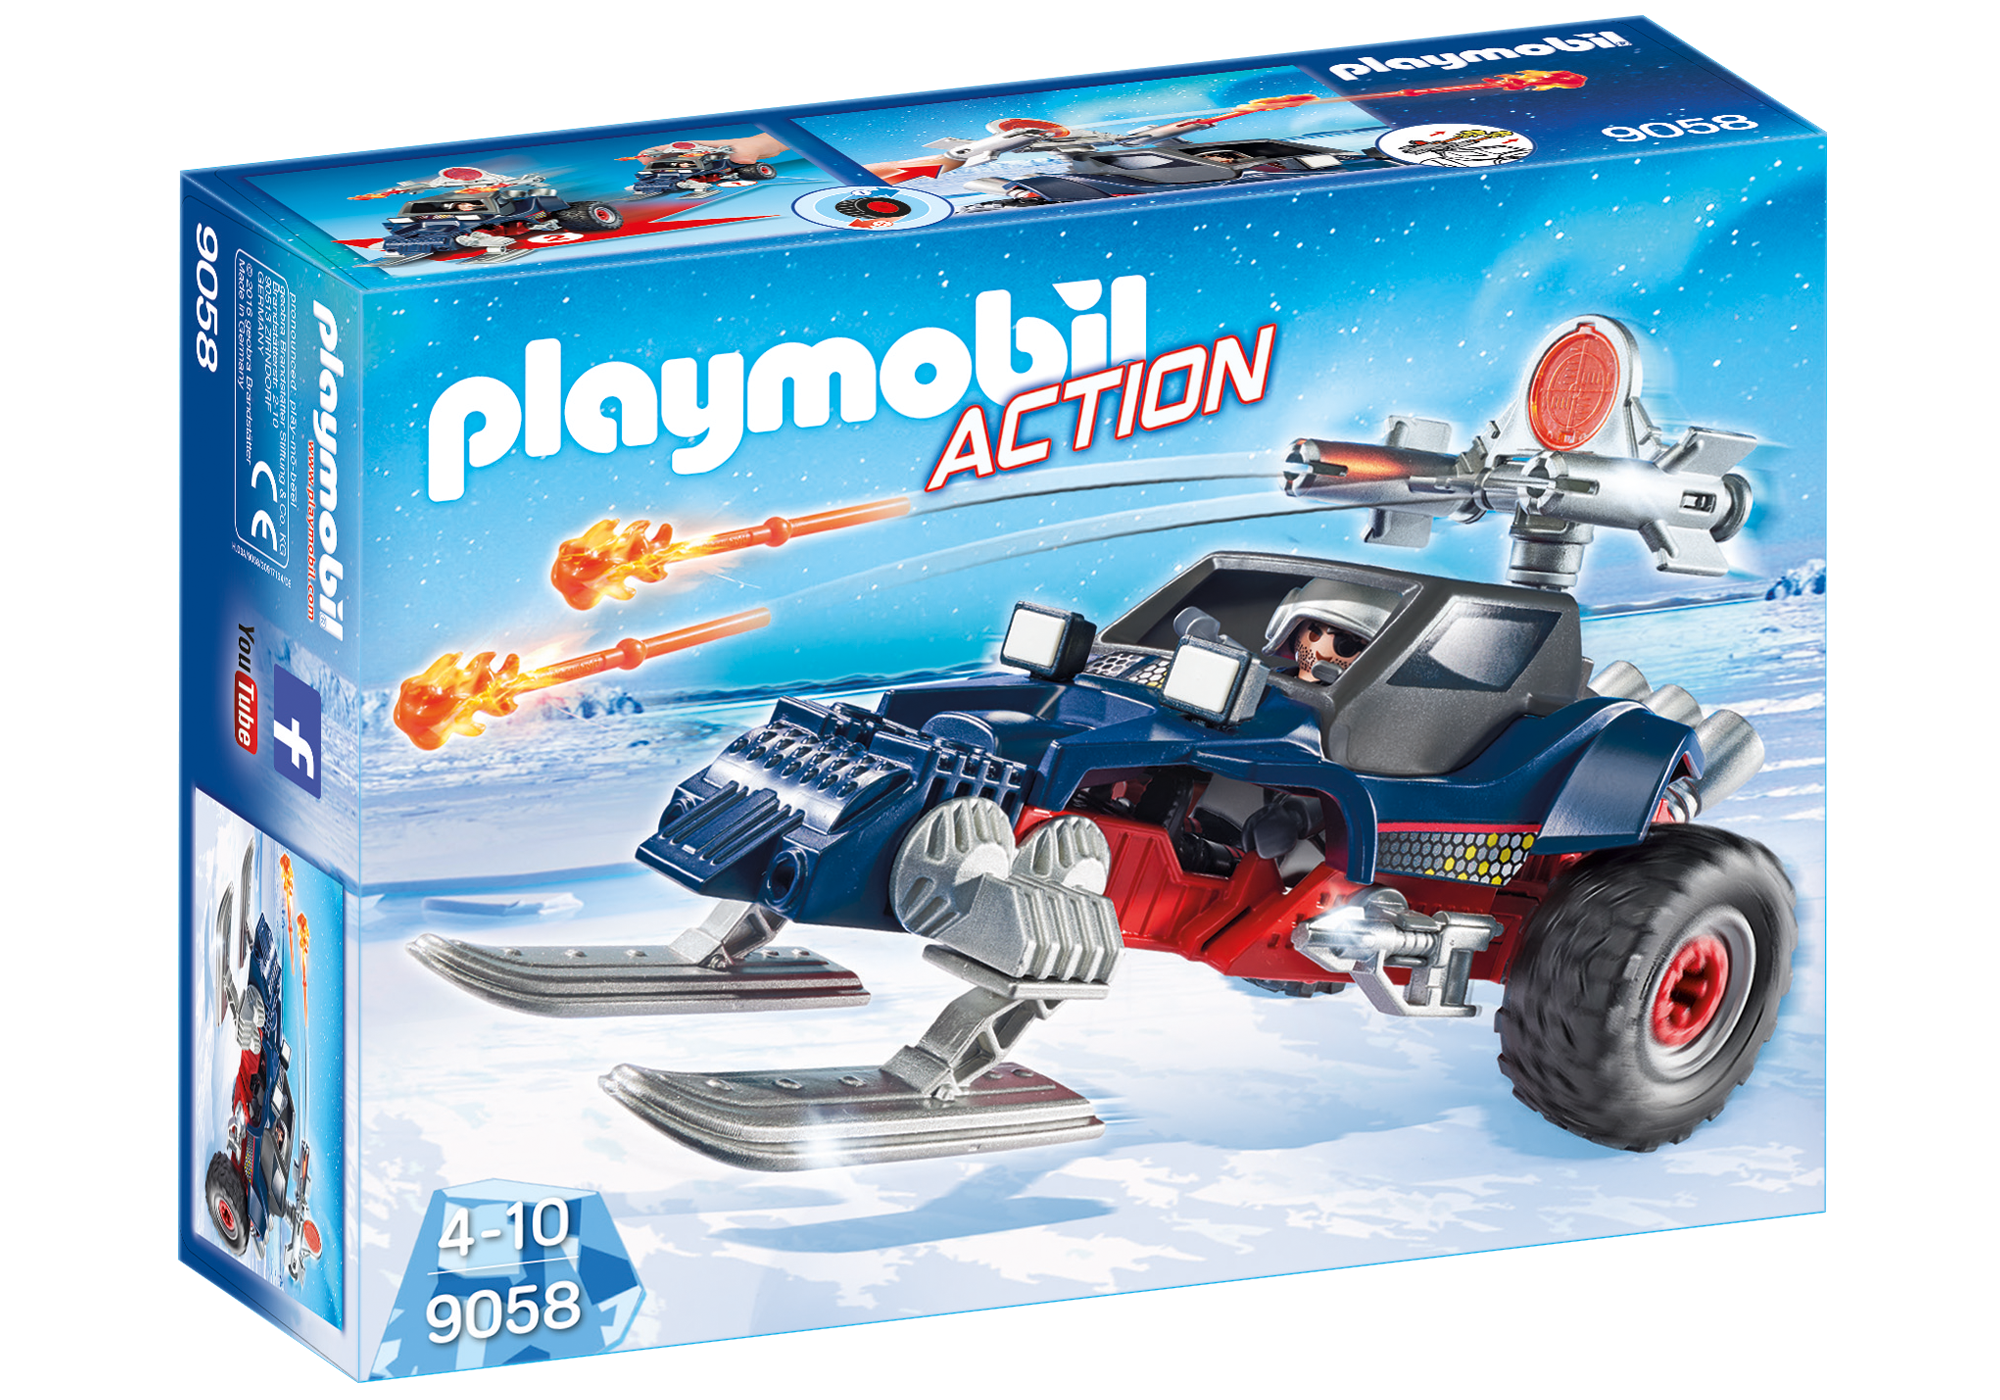 http://media.playmobil.com/i/playmobil/9058_product_box_front